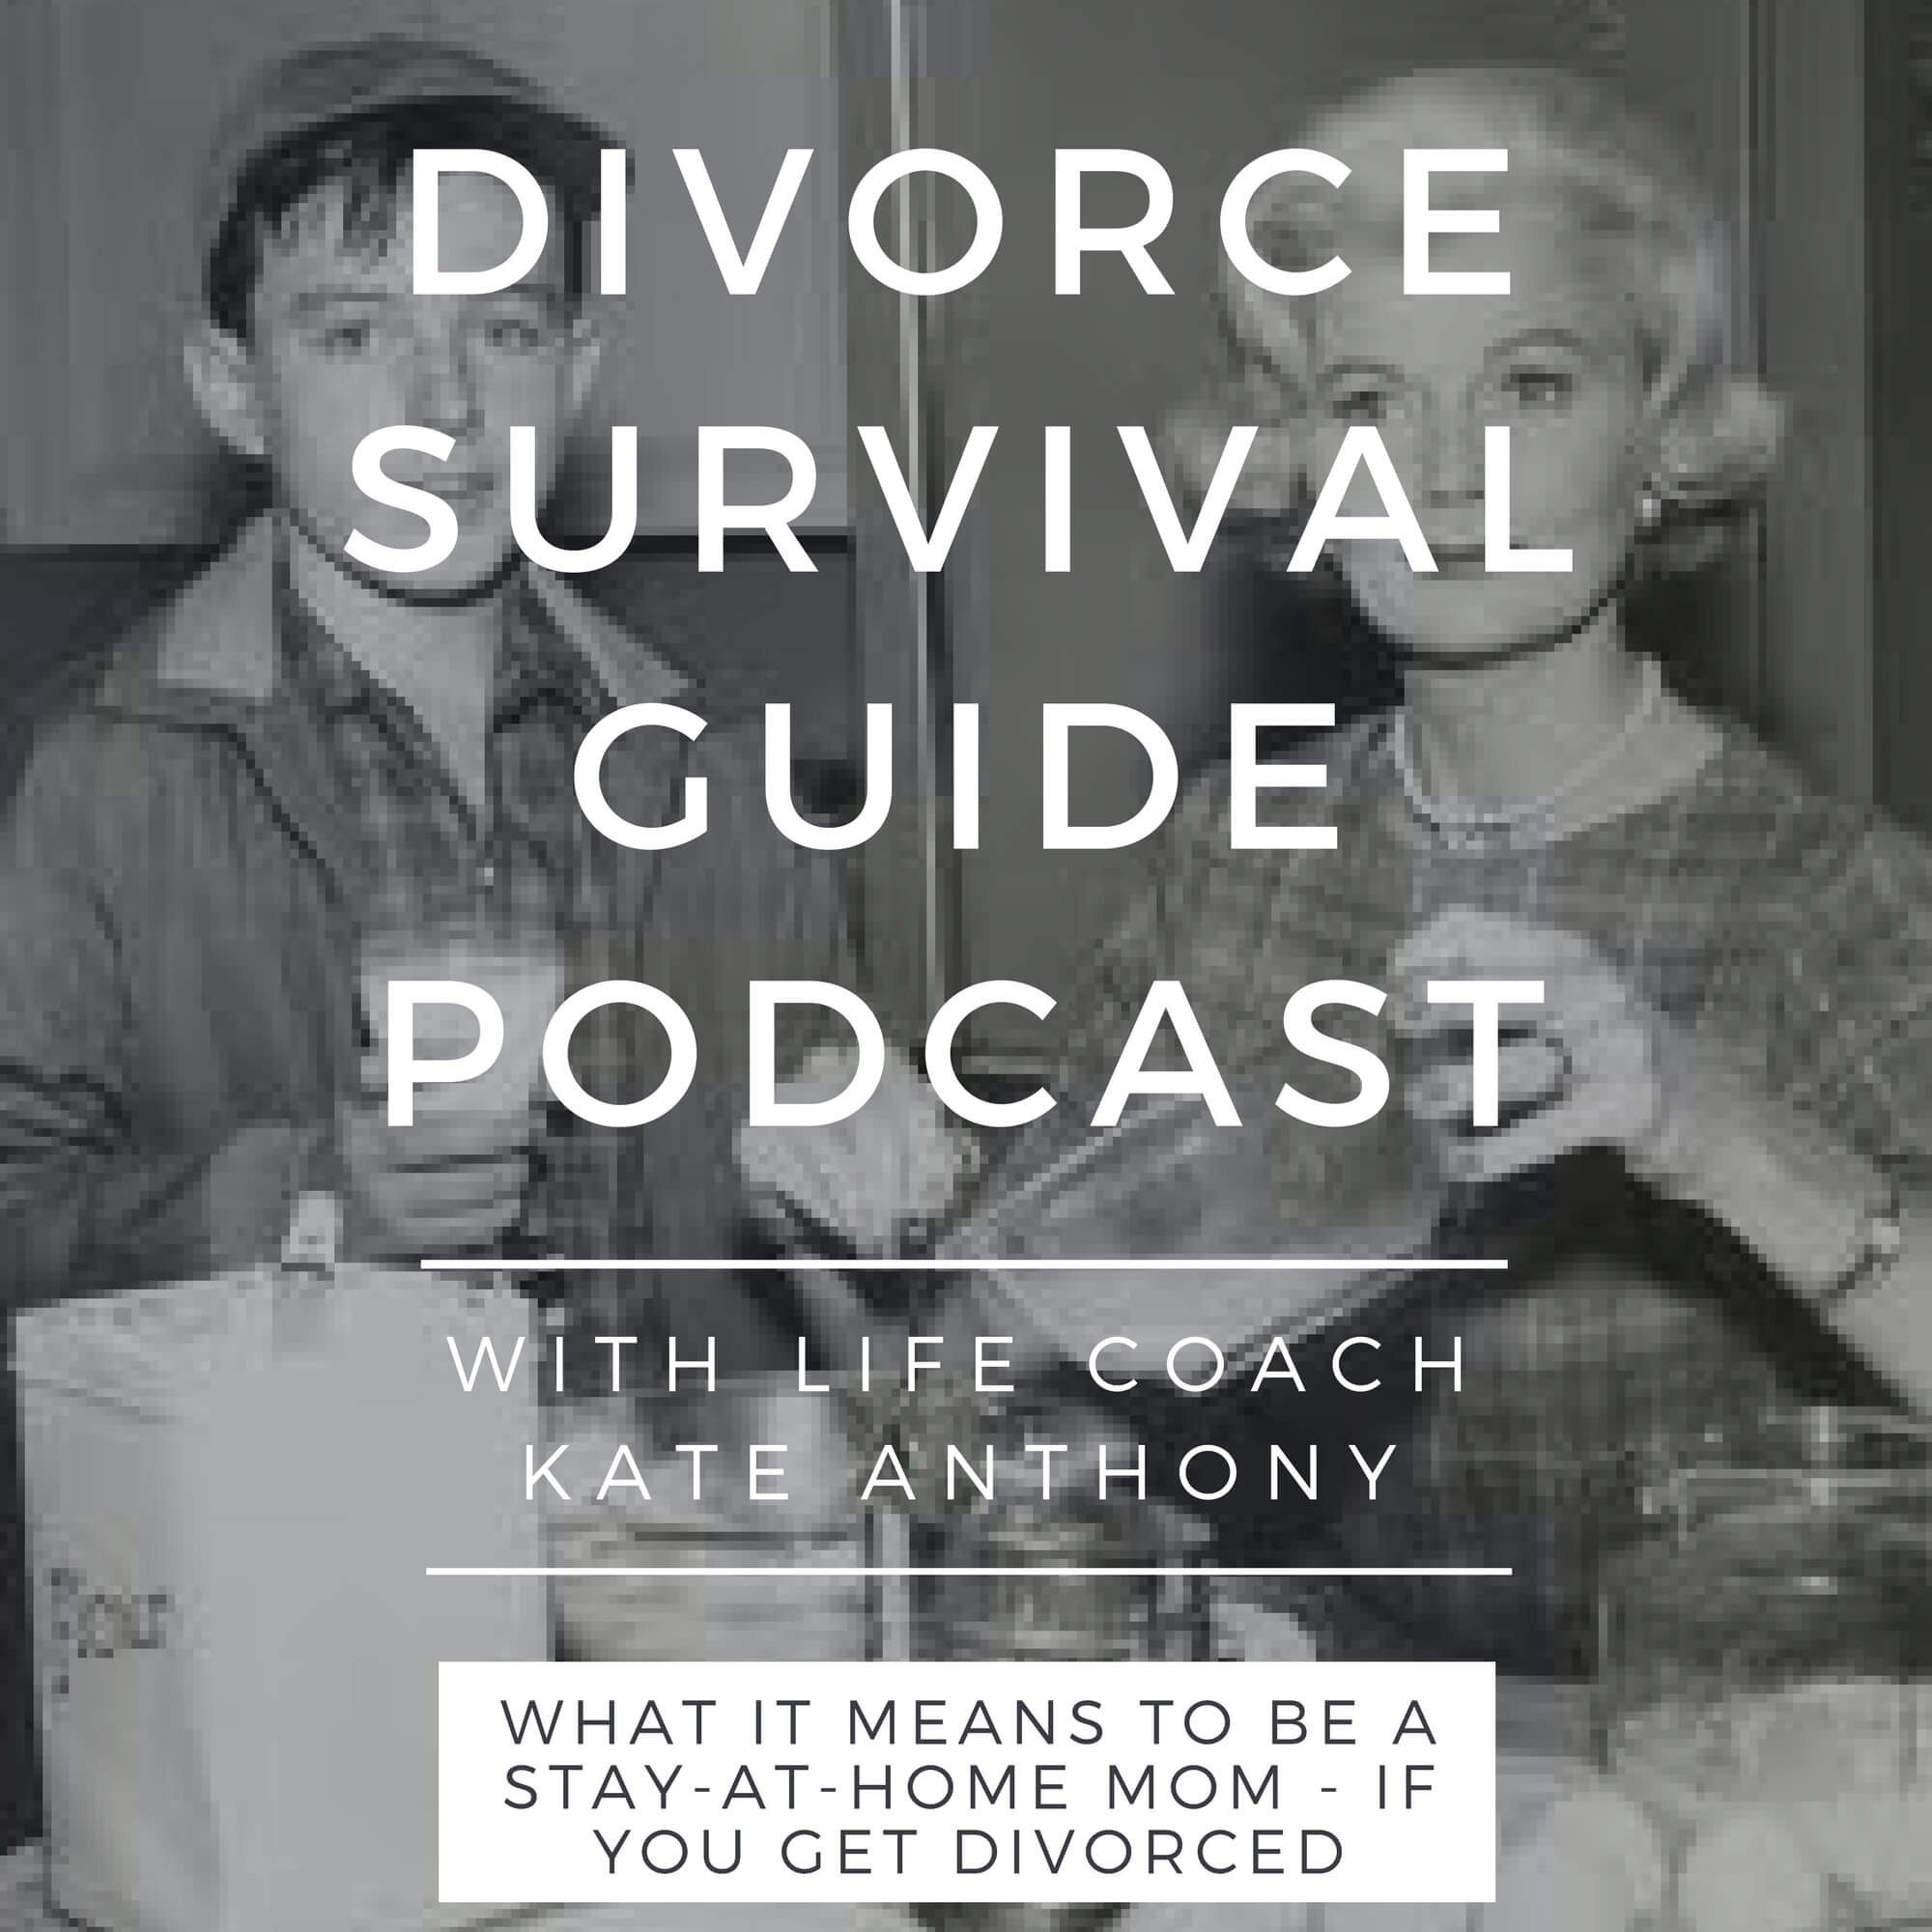 The Divorce Survival Guide Podcast - What it really means to be a stay-at-home—if you get divorced